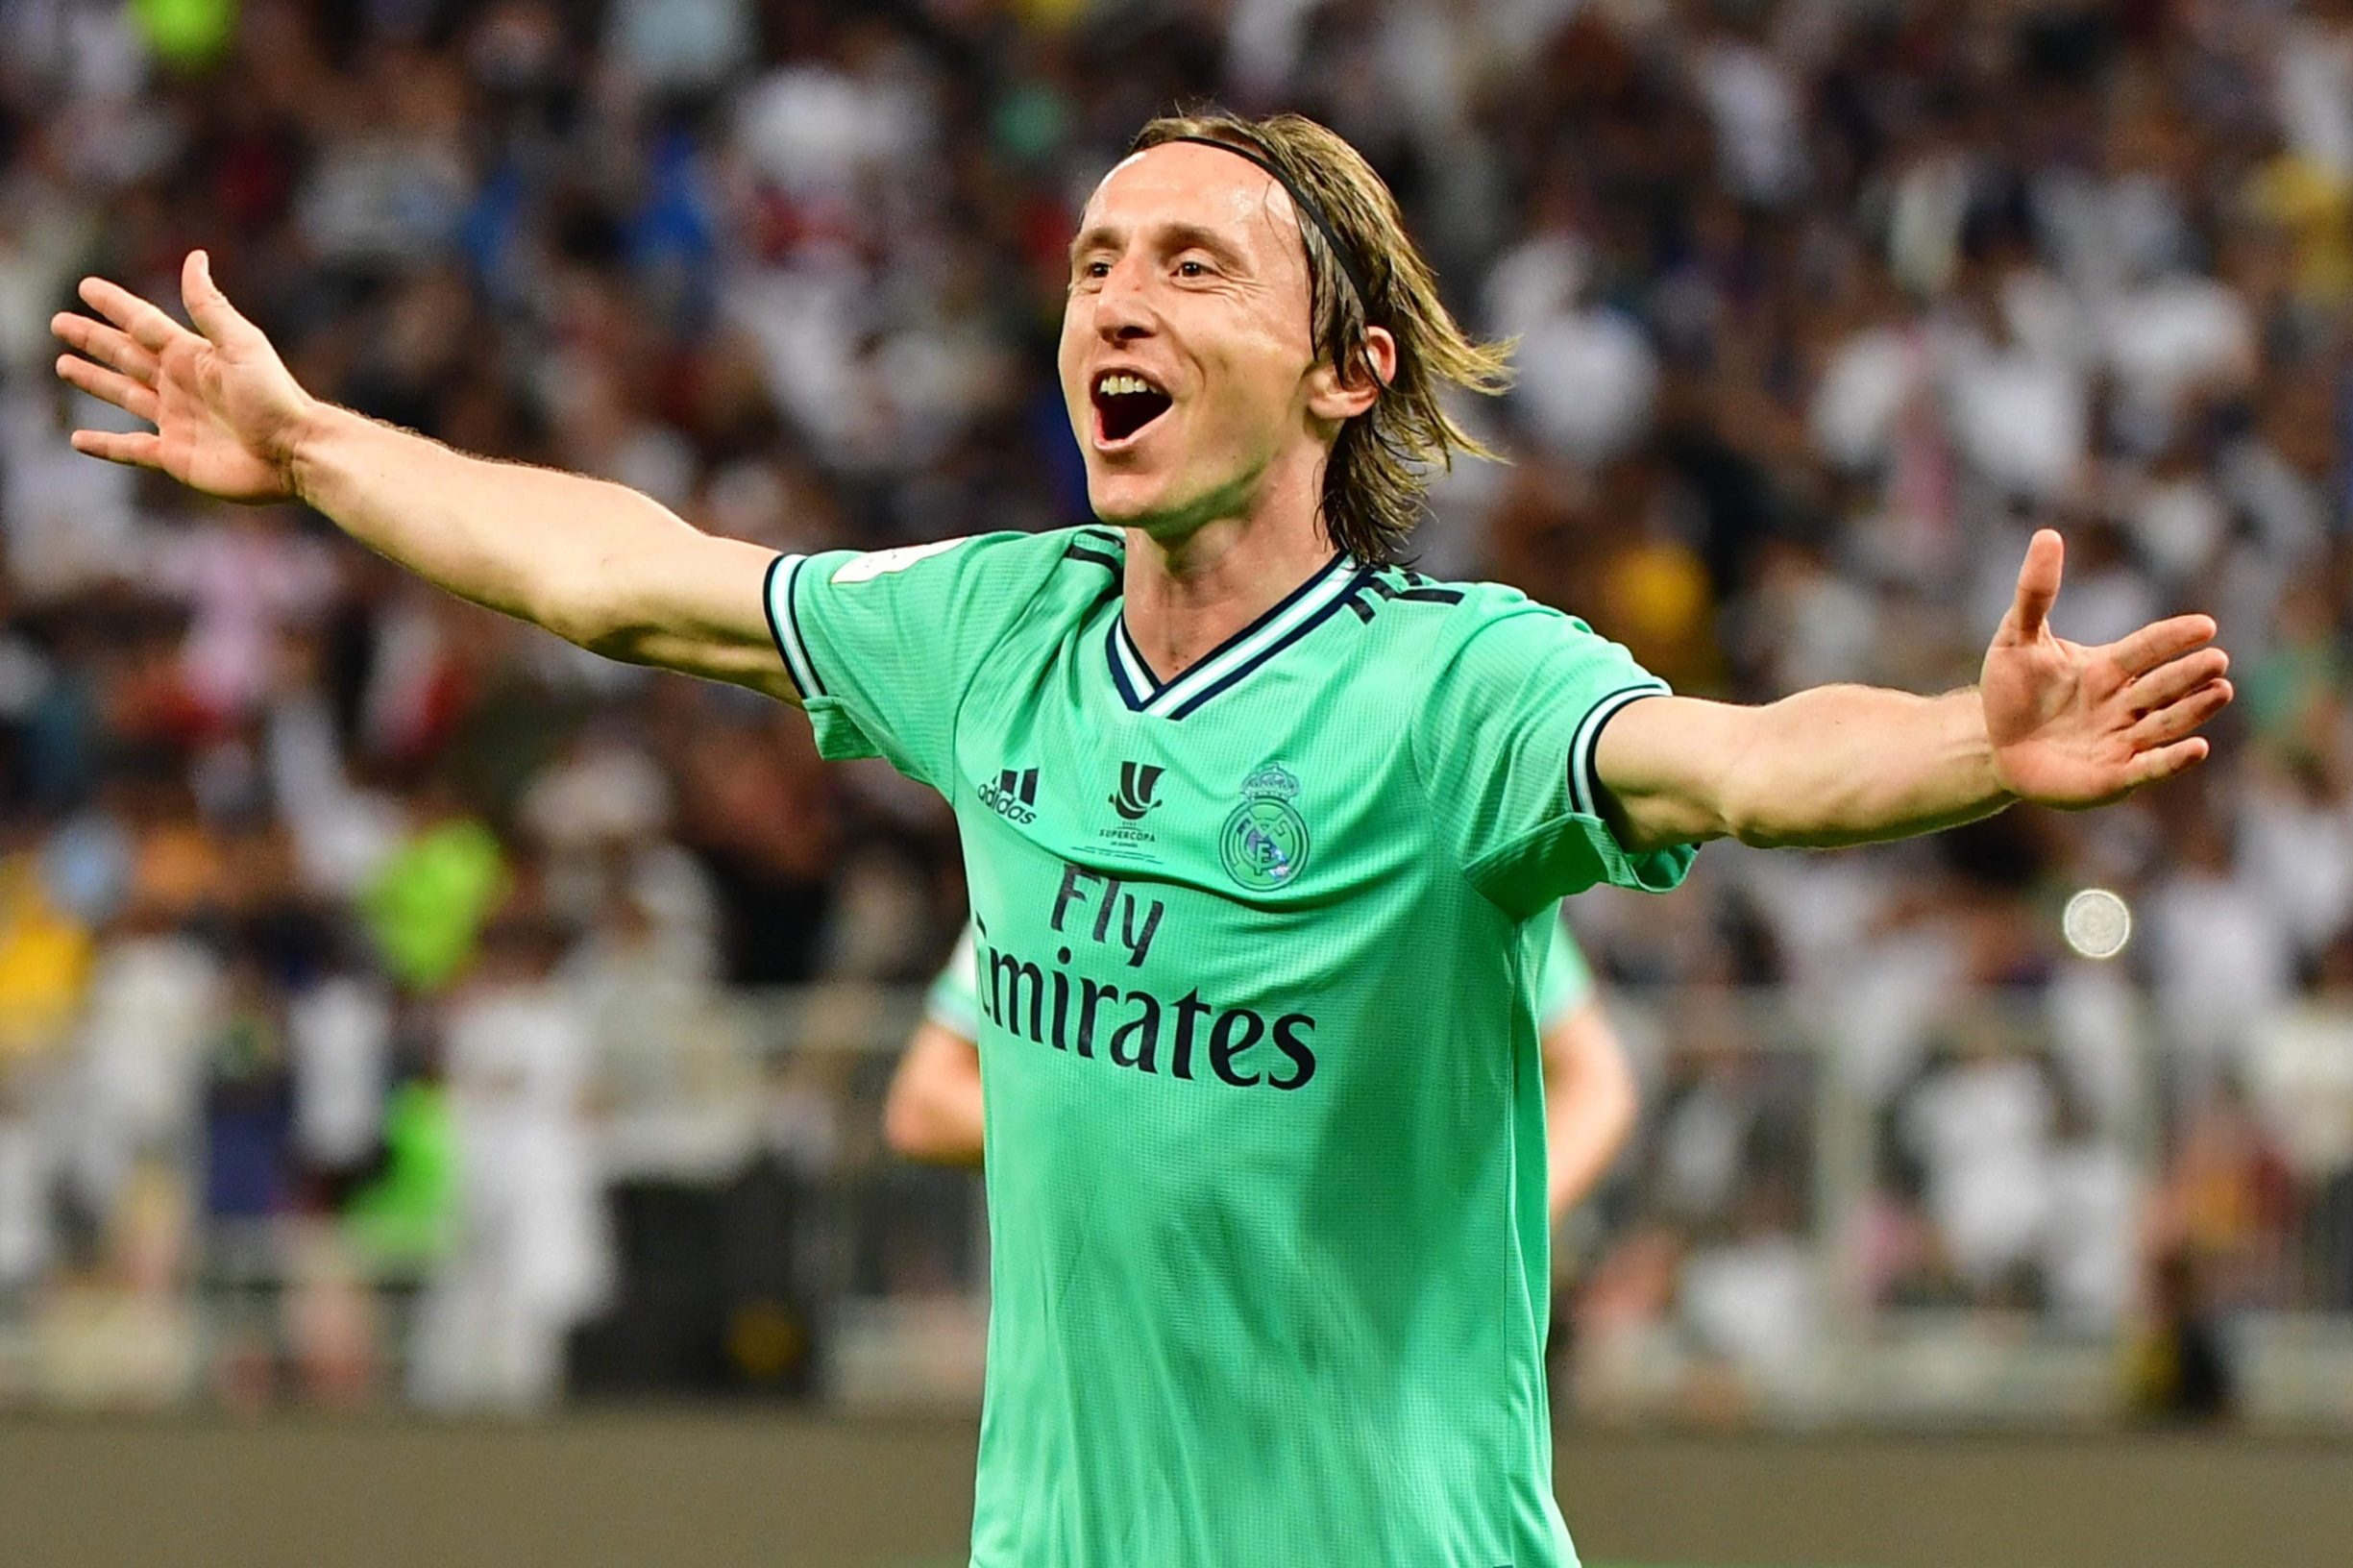 Real Madrid's Croatian midfielder Luka Modric celebrates his goal during the Spanish Super Cup semi final between Valencia and Real Madrid on January 8, 2020, at the King Abdullah Sport City in the Saudi Arabian port city of Jeddah. (Photo by GIUSEPPE CACACE / AFP)